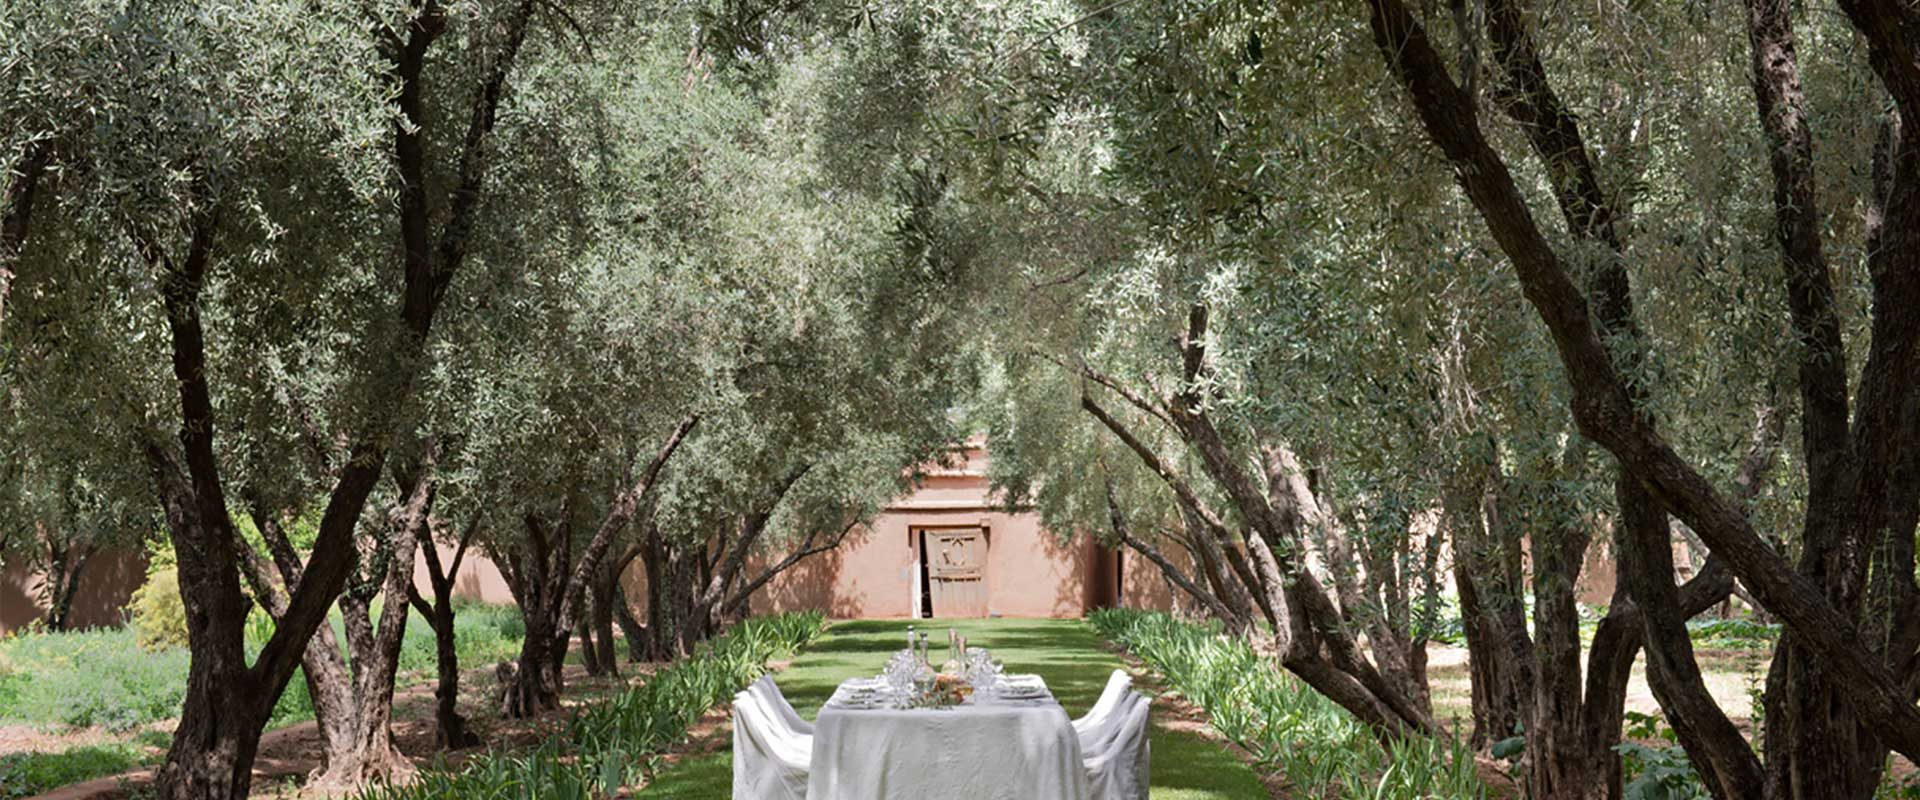 Sustainable Travel: the simplest can be the most sumptuous, Paladar y Tomar